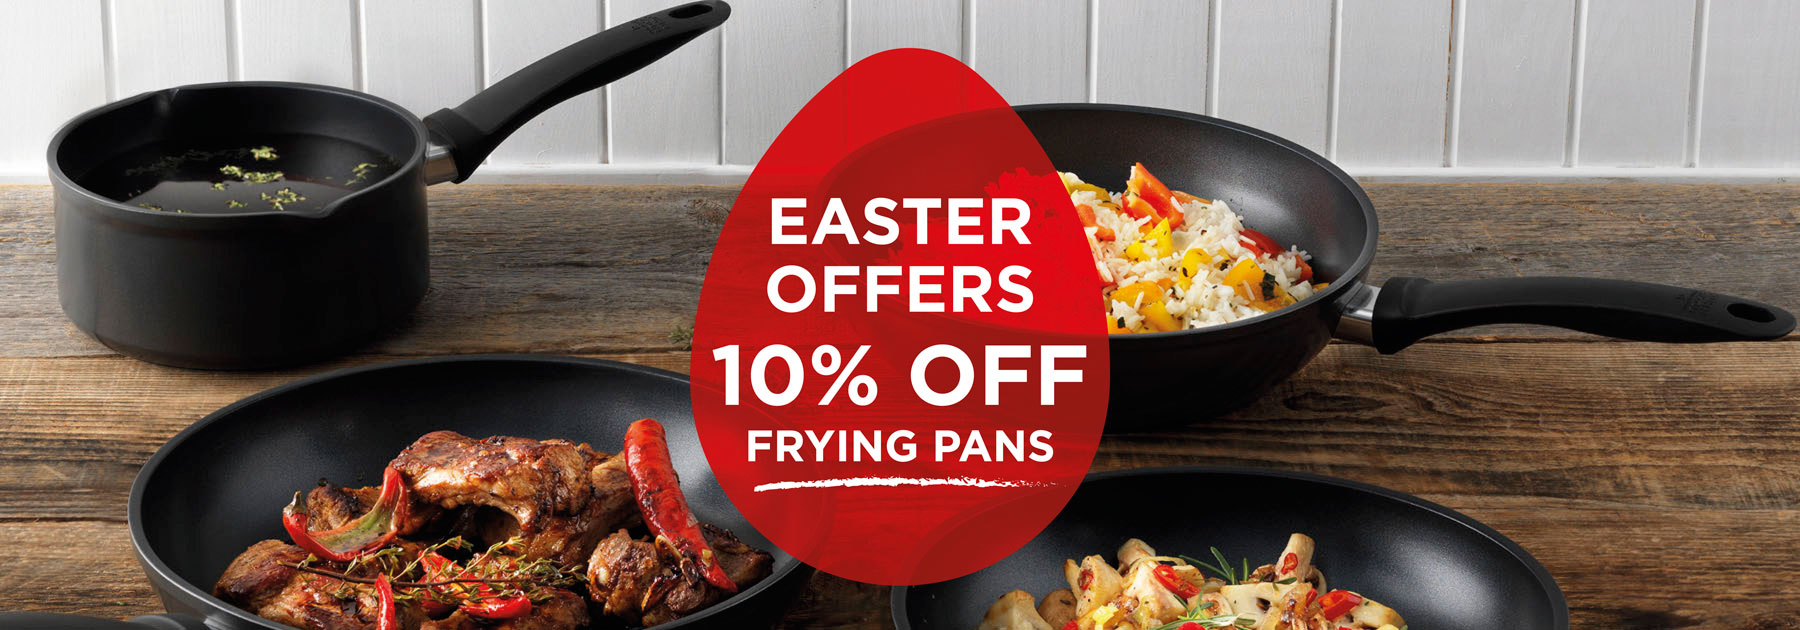 Discount, Easter, Sale, Frying Pans